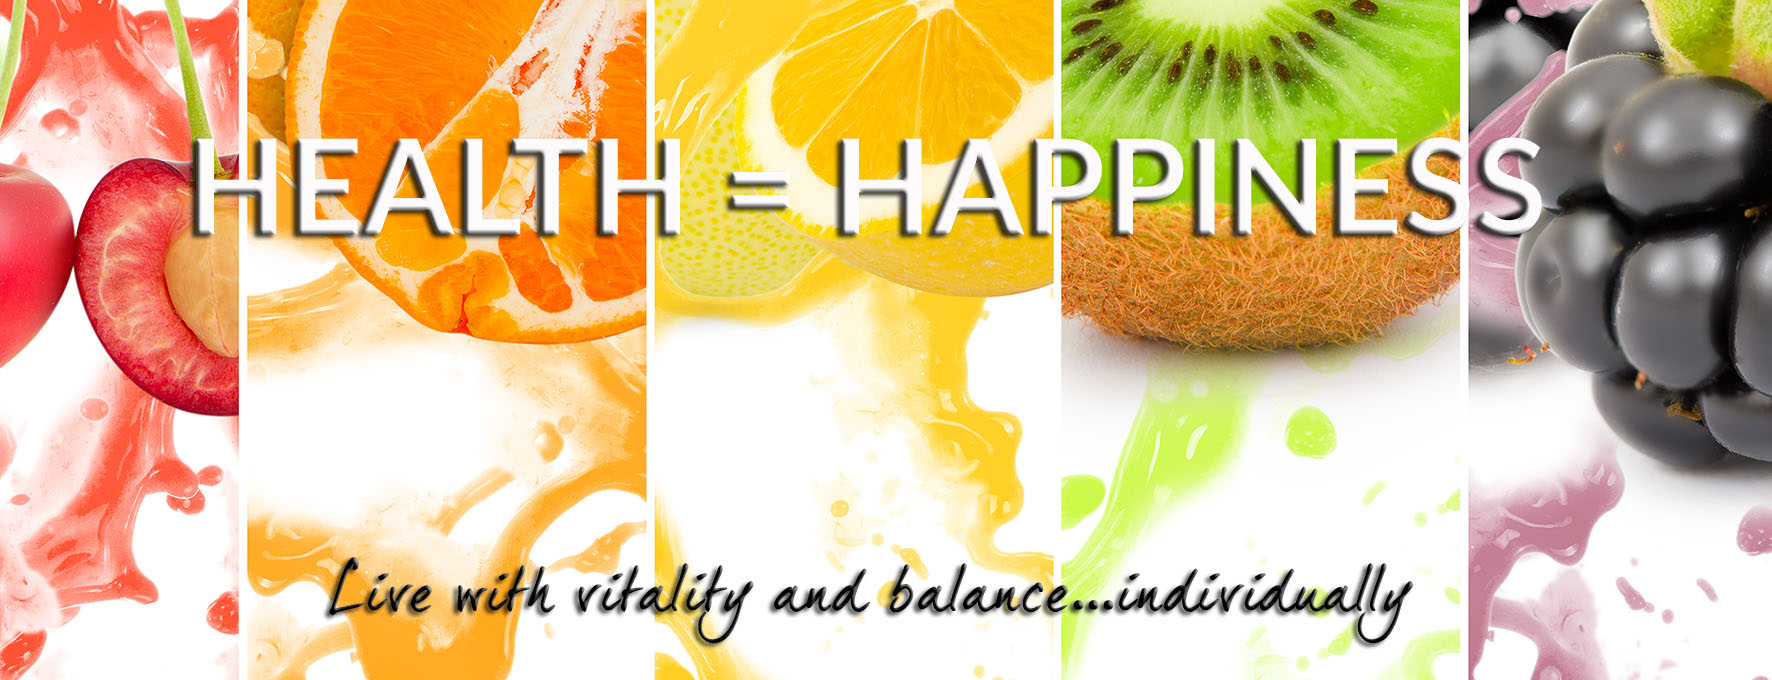 Health = Happiness Ltd